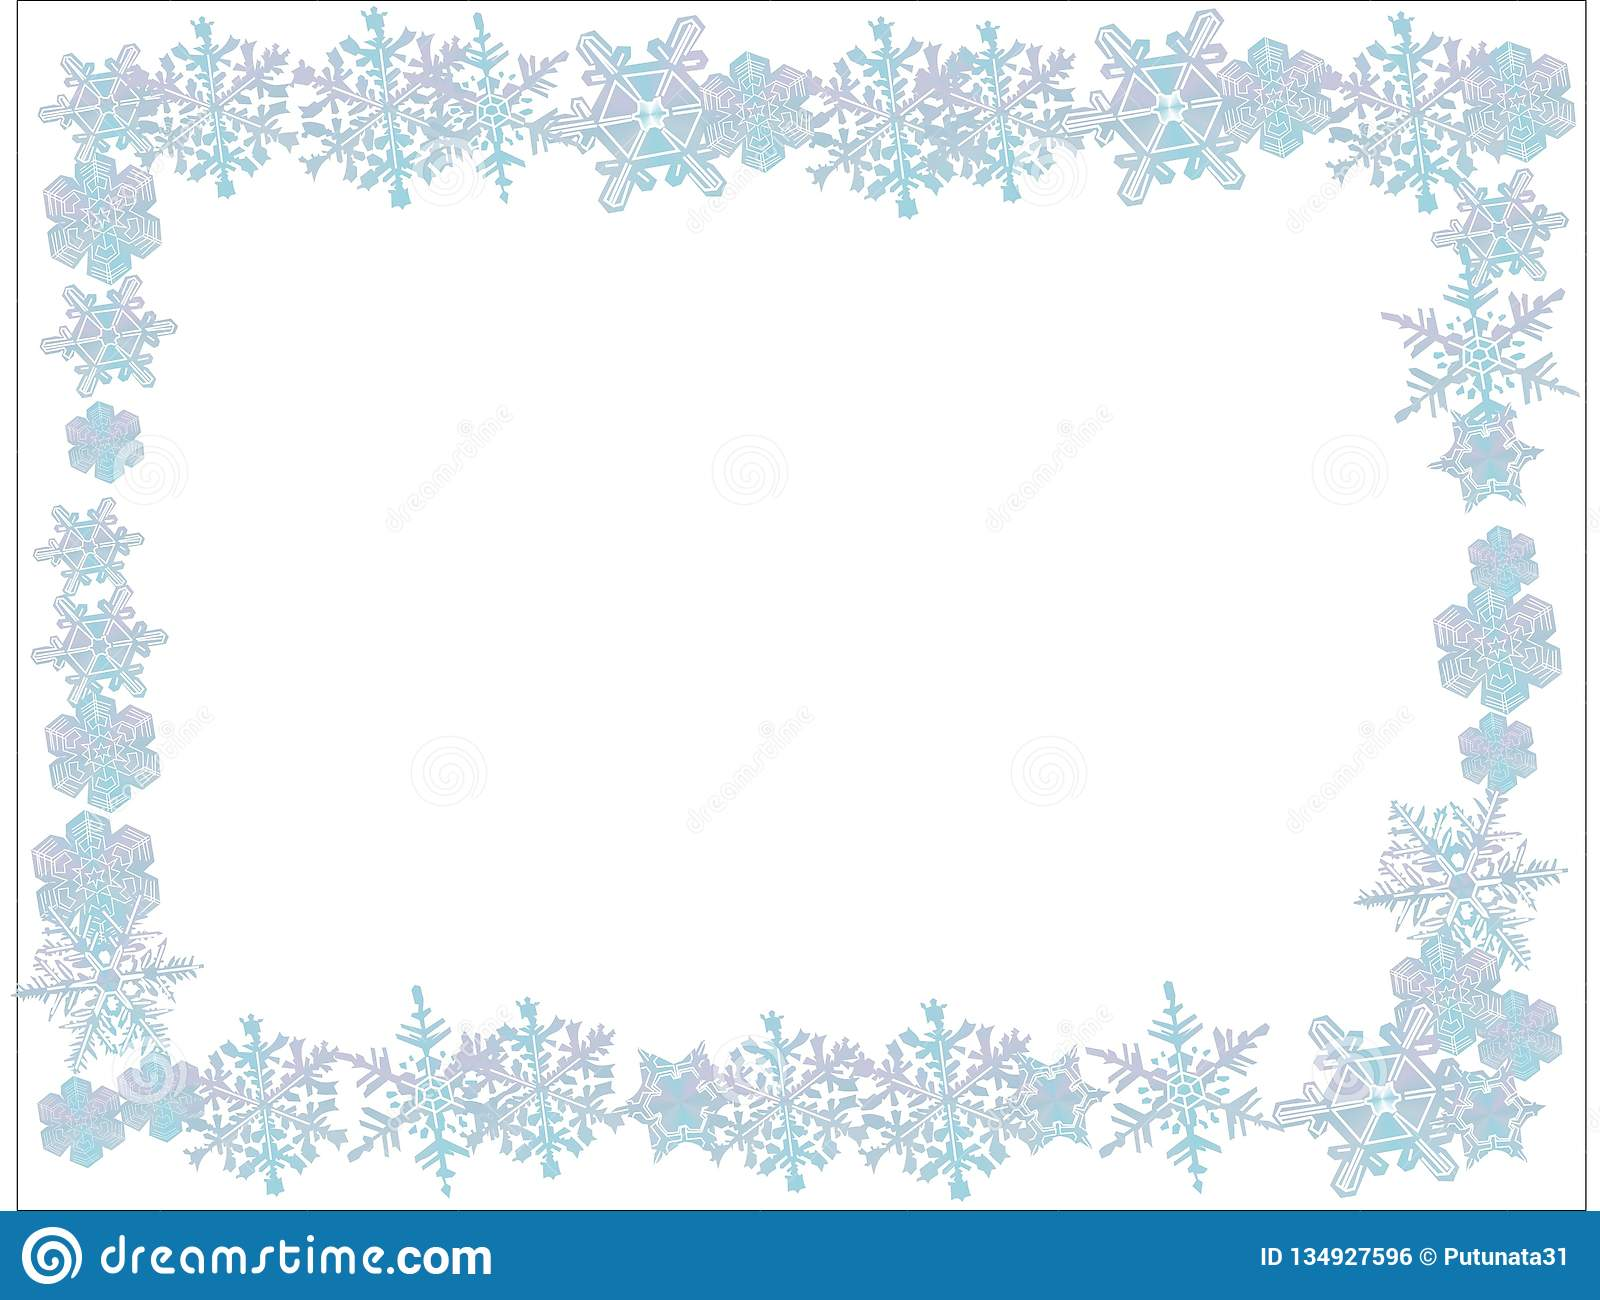 VERY SIMPLE BACKGROUND. SNOWFLAKES AND WHITE BACKGROUND. SIMPLE WALLPAPER. SNOWFLOWER